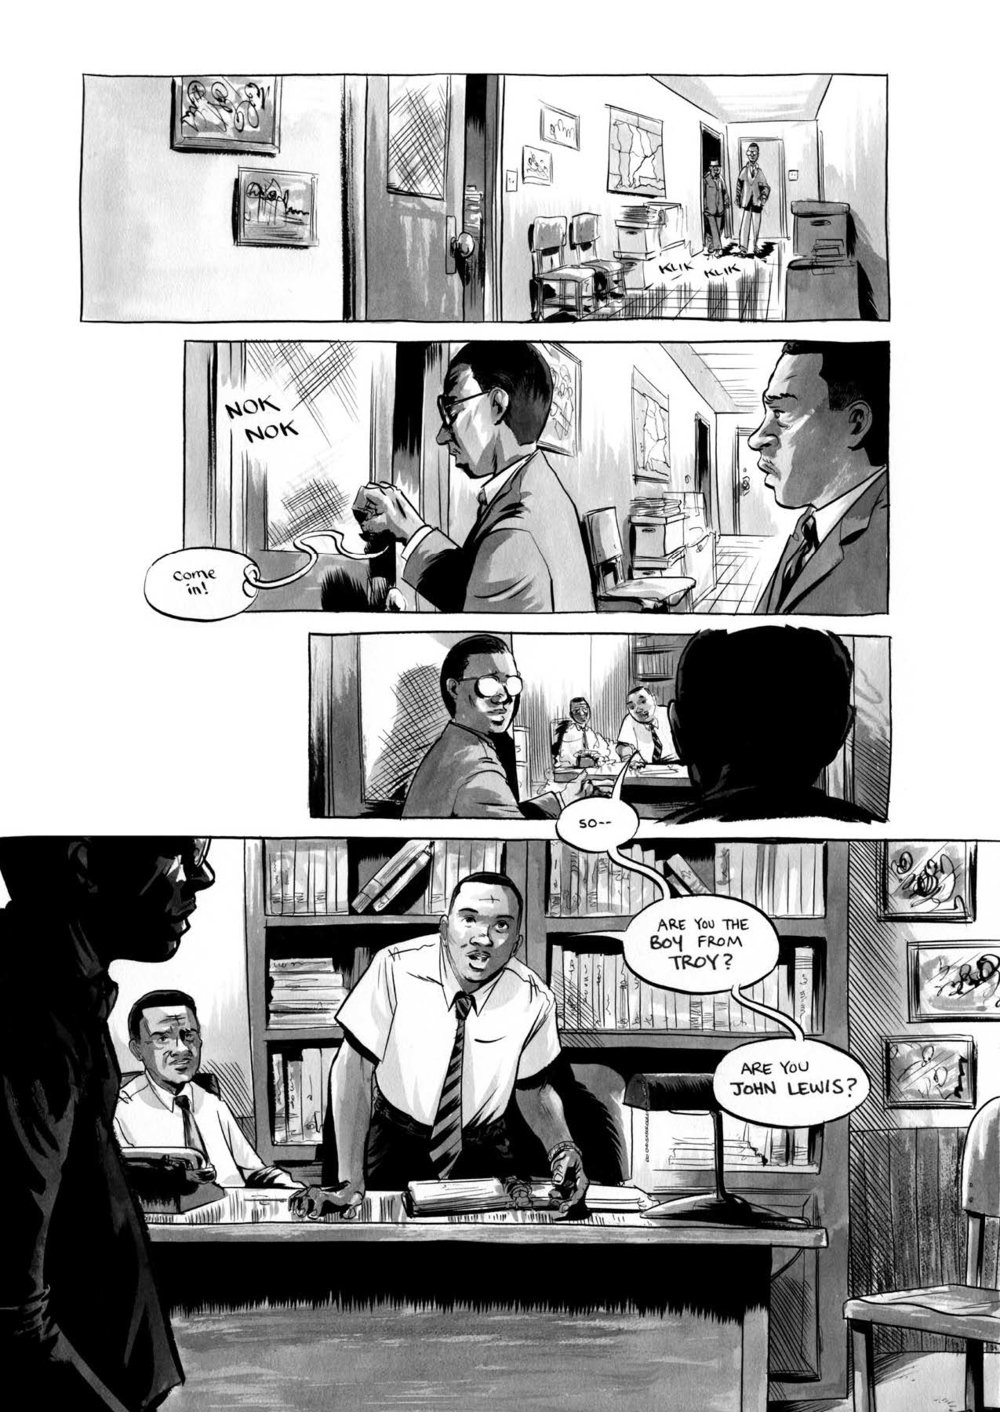 segment from  March: Book One  by Congressman John Lewis, Andrew Aydin, and Nate Powell